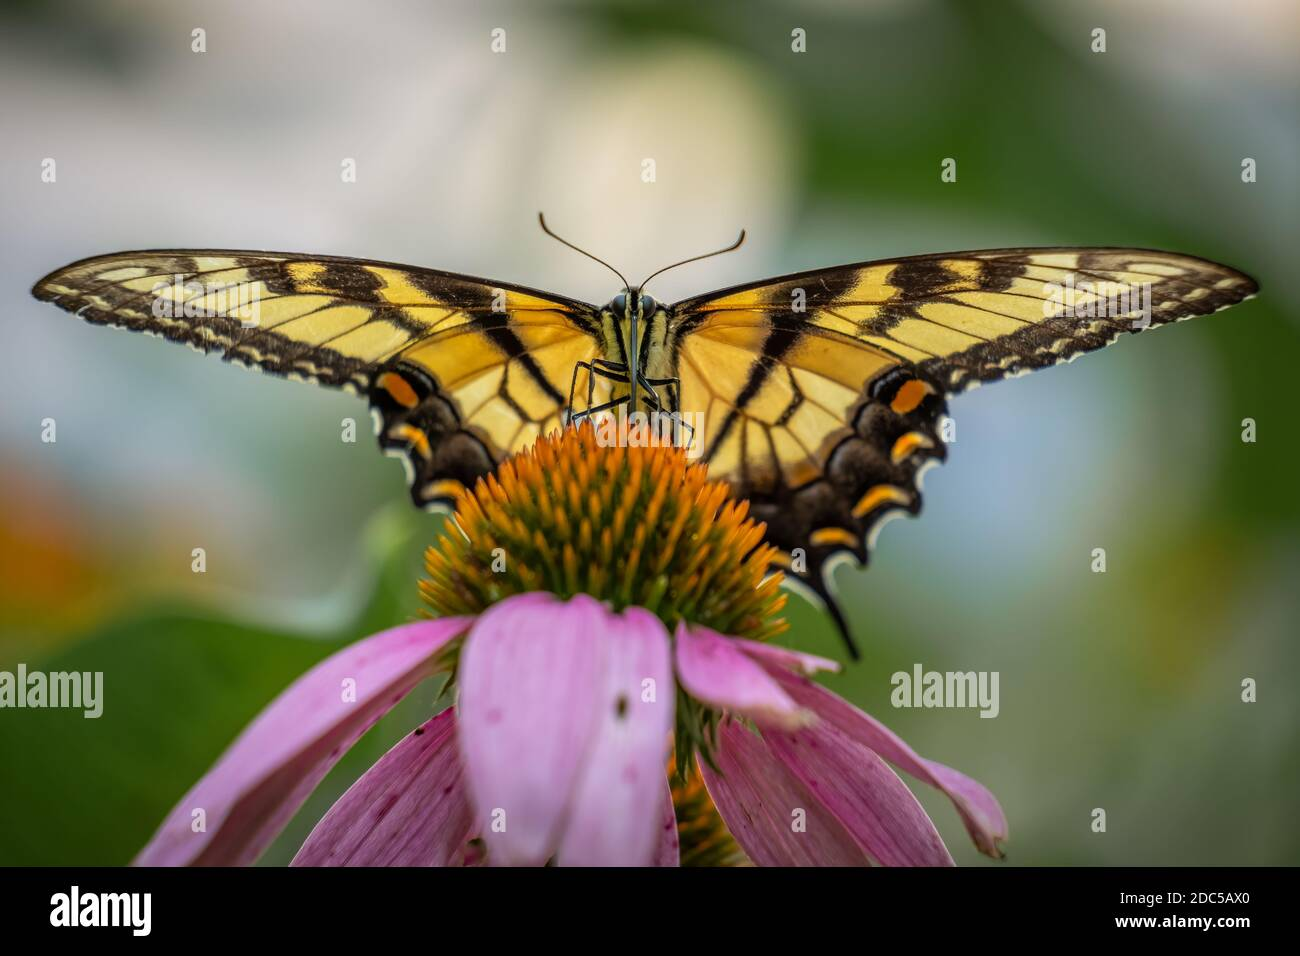 The Eastern Tiger Swallowtail (Papilio glaucus), North Carolina's state butterfly. Front view, on a coneflower. Stock Photo